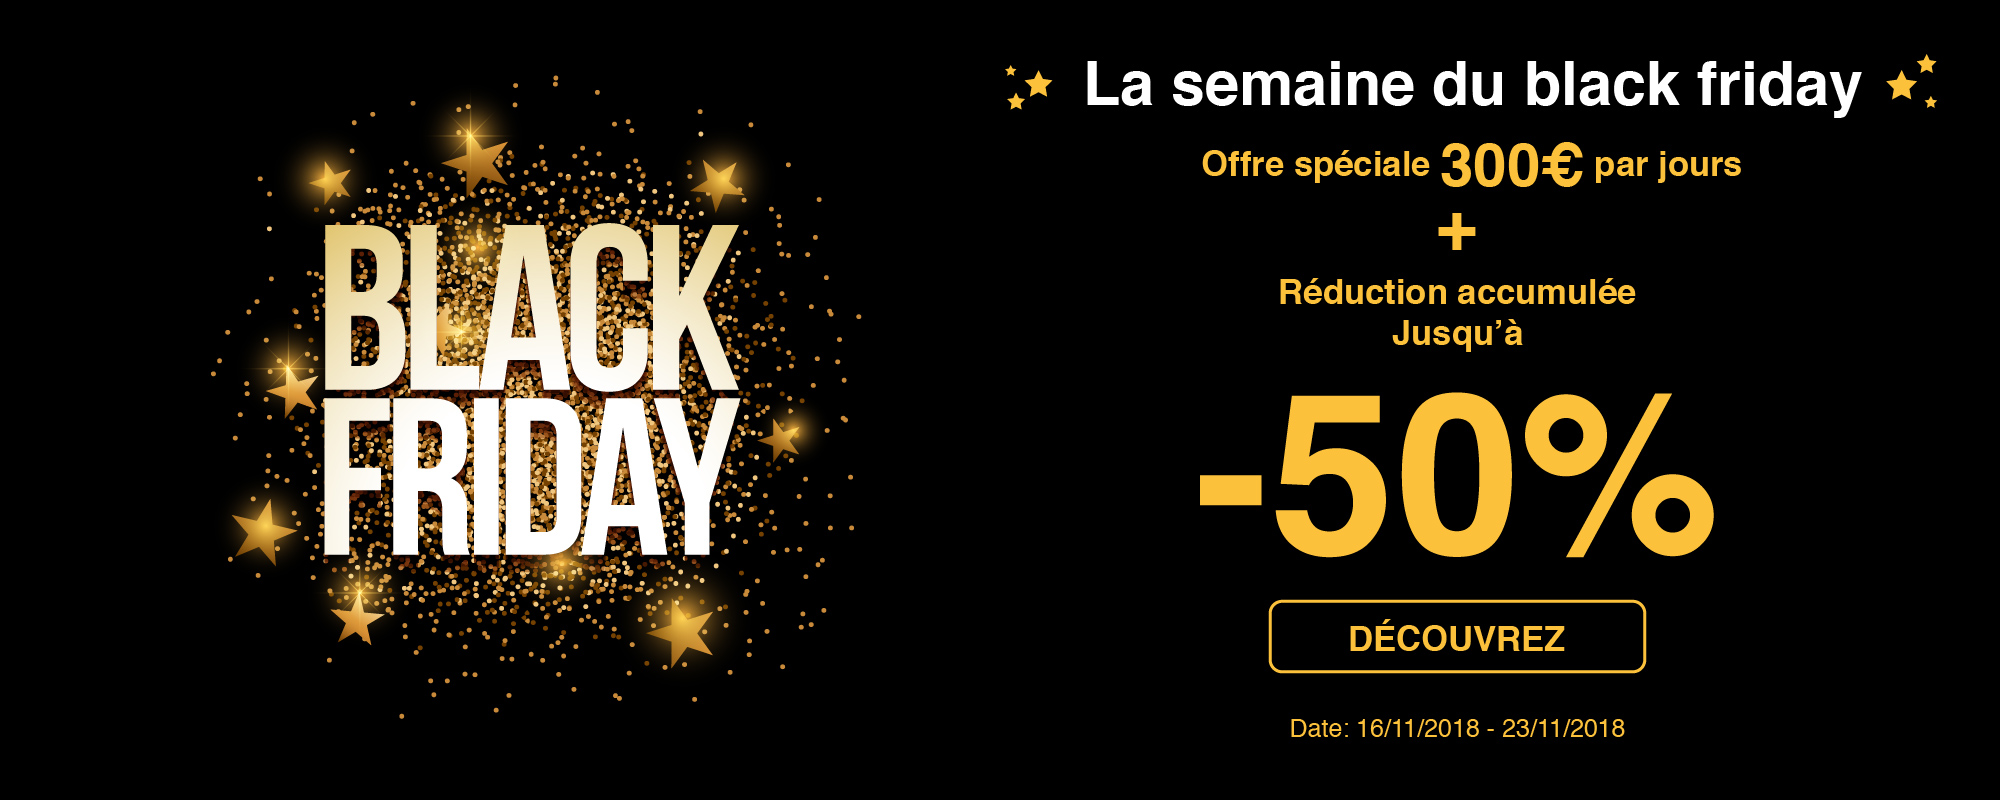 Black friday Greaden